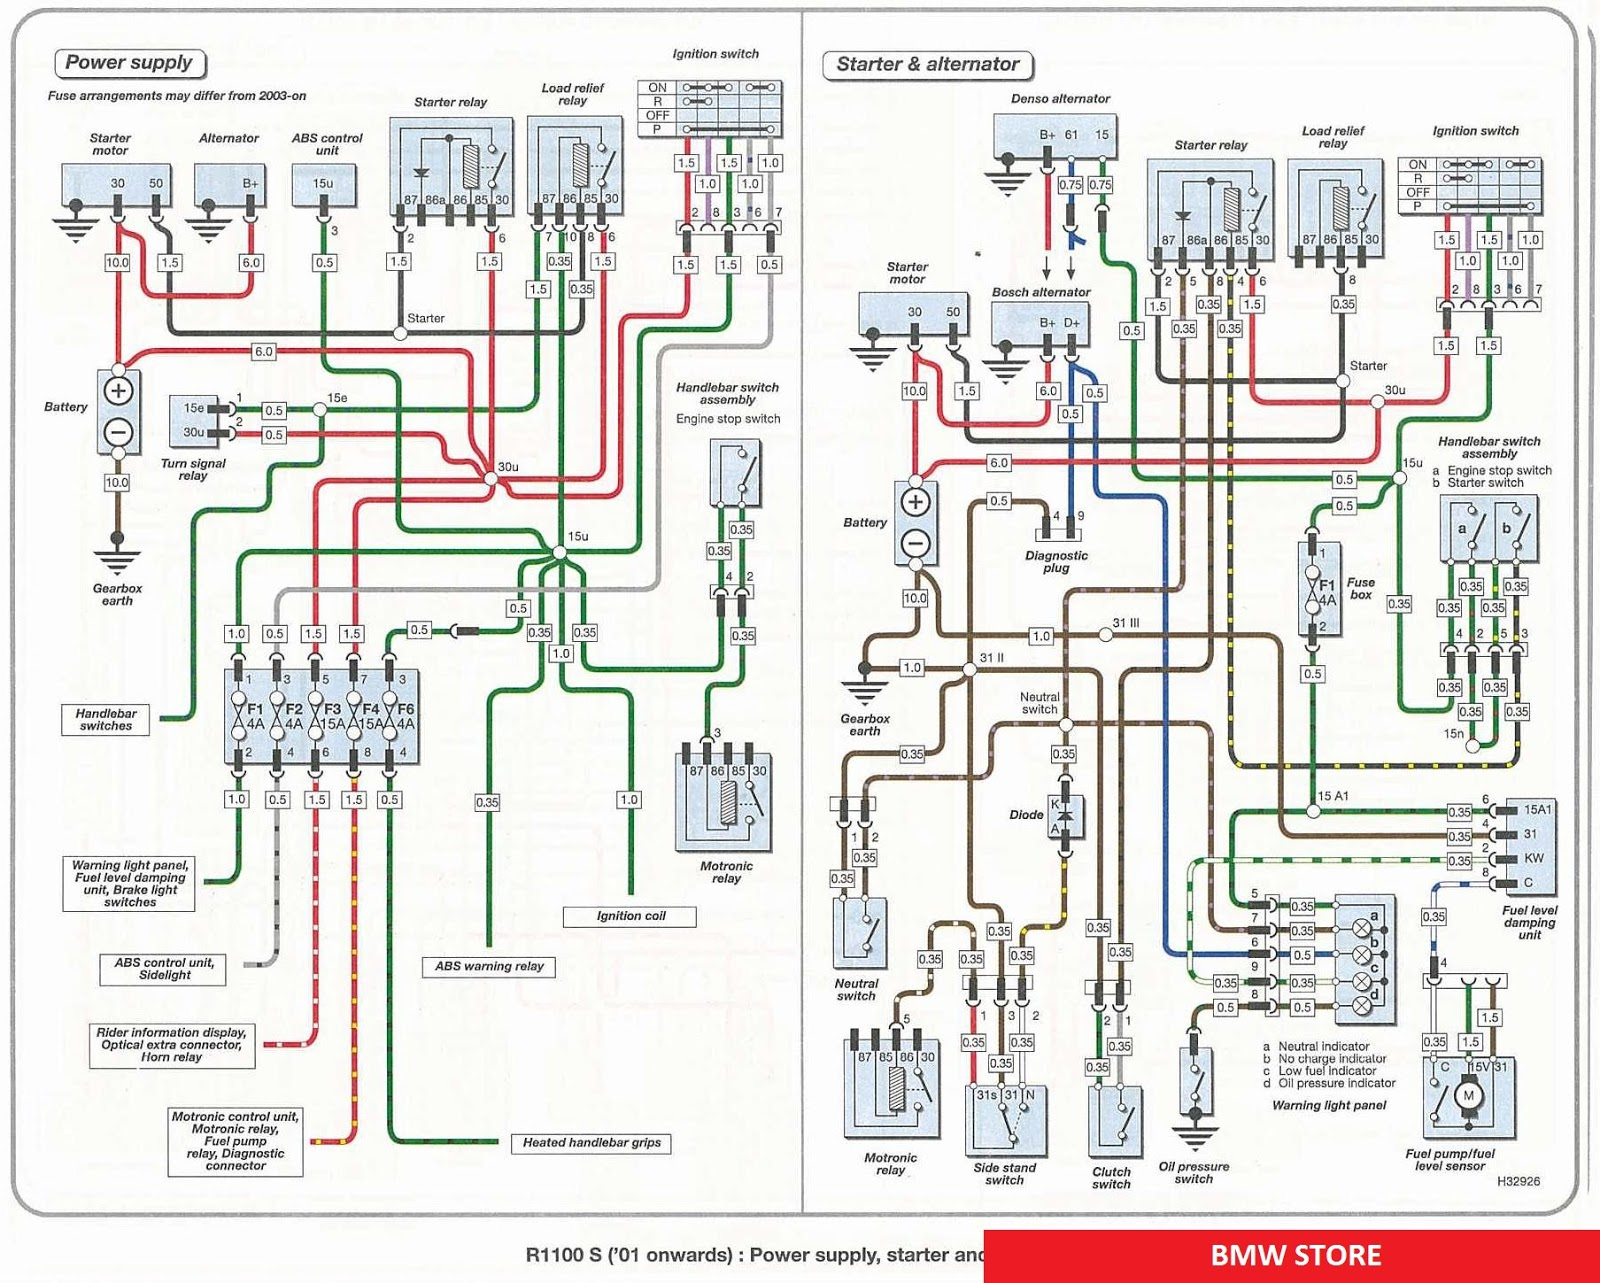 R1150rt Engine Diagram - Experience of Wiring Diagram on